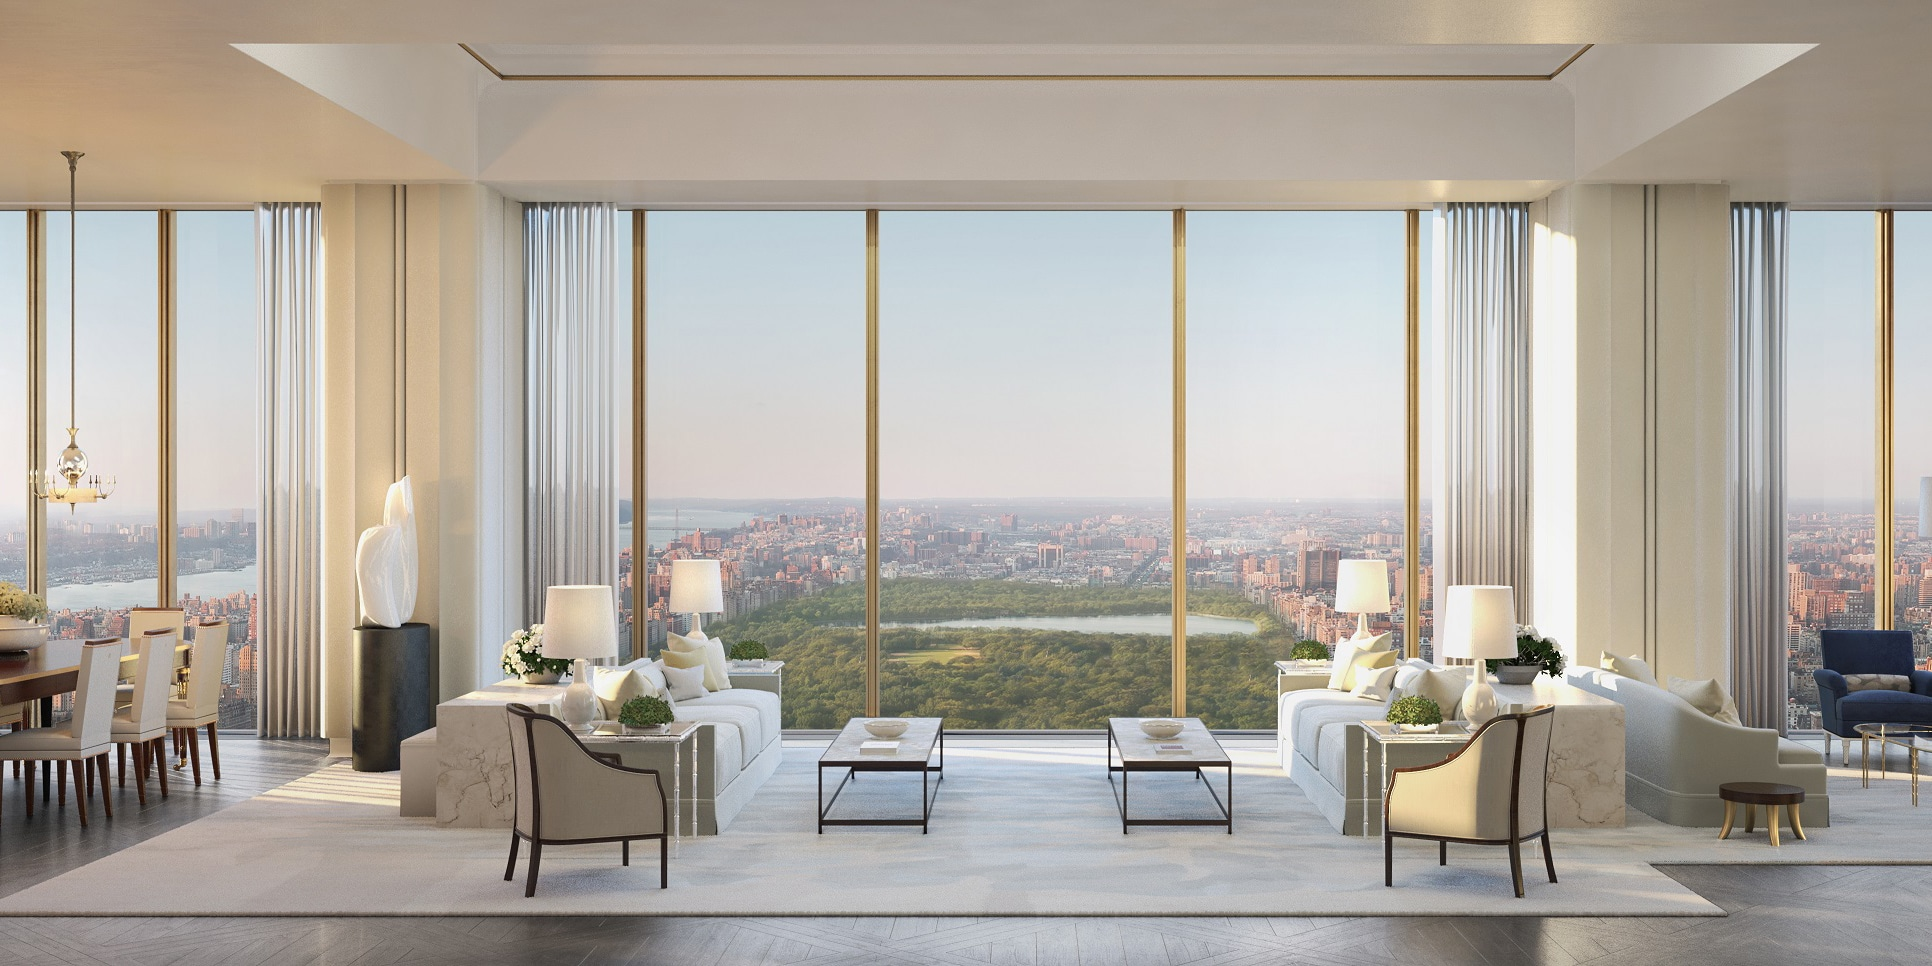 Penthouse living room at 111 West 57th St luxury condos in New York. Floor-to-ceiling windows with views of Central Park.